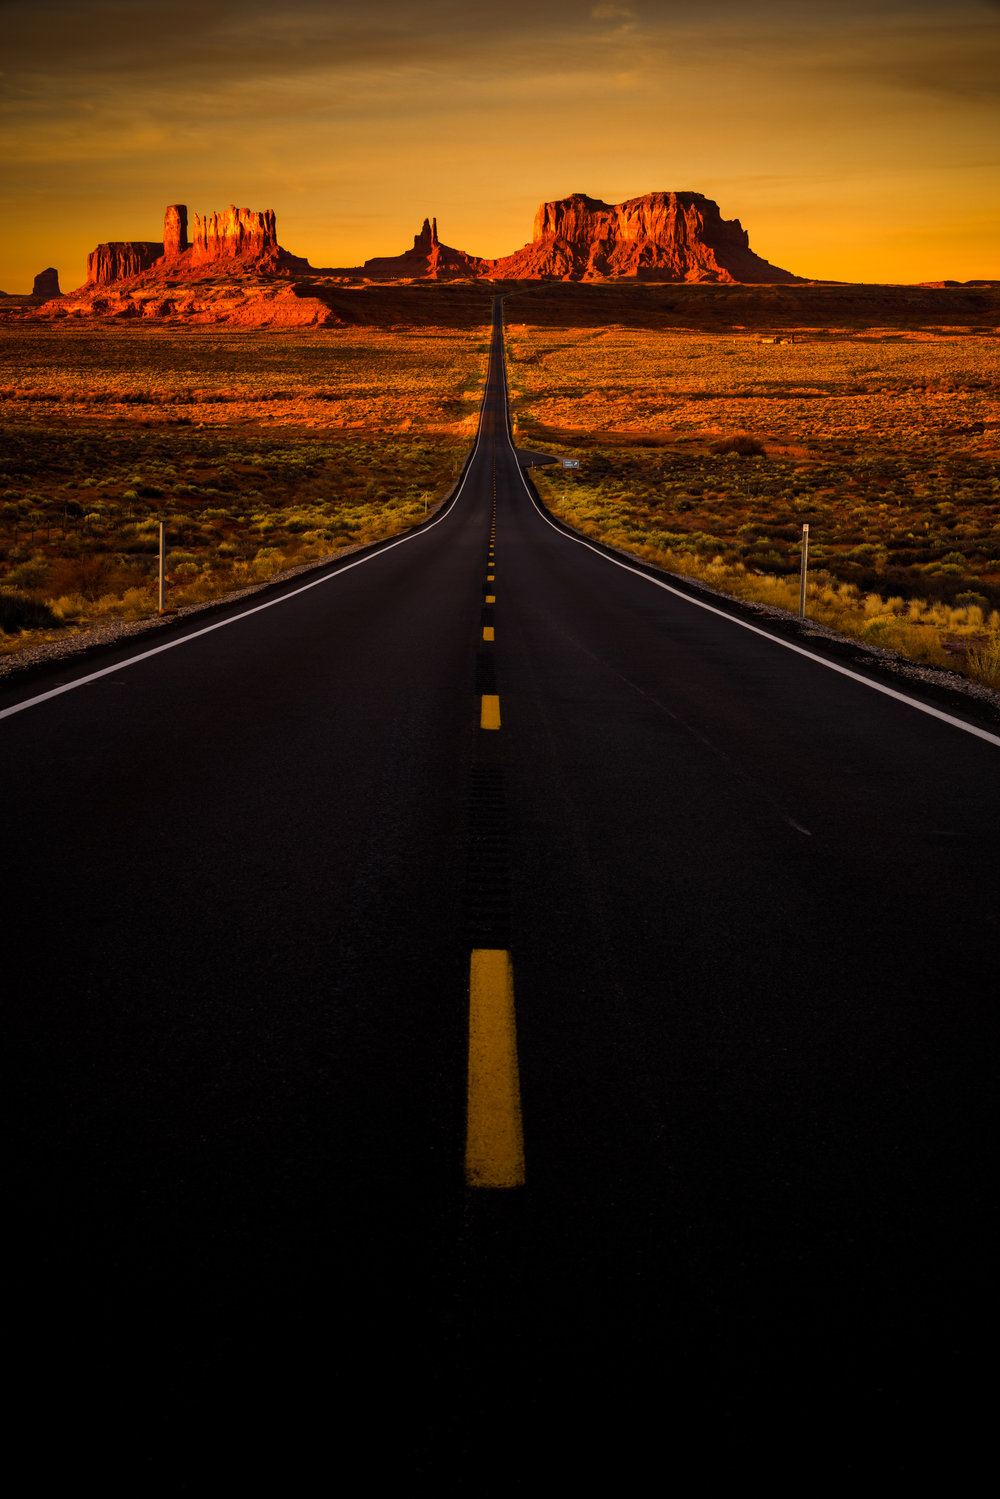 The Long Road Home Squarespace.jpg